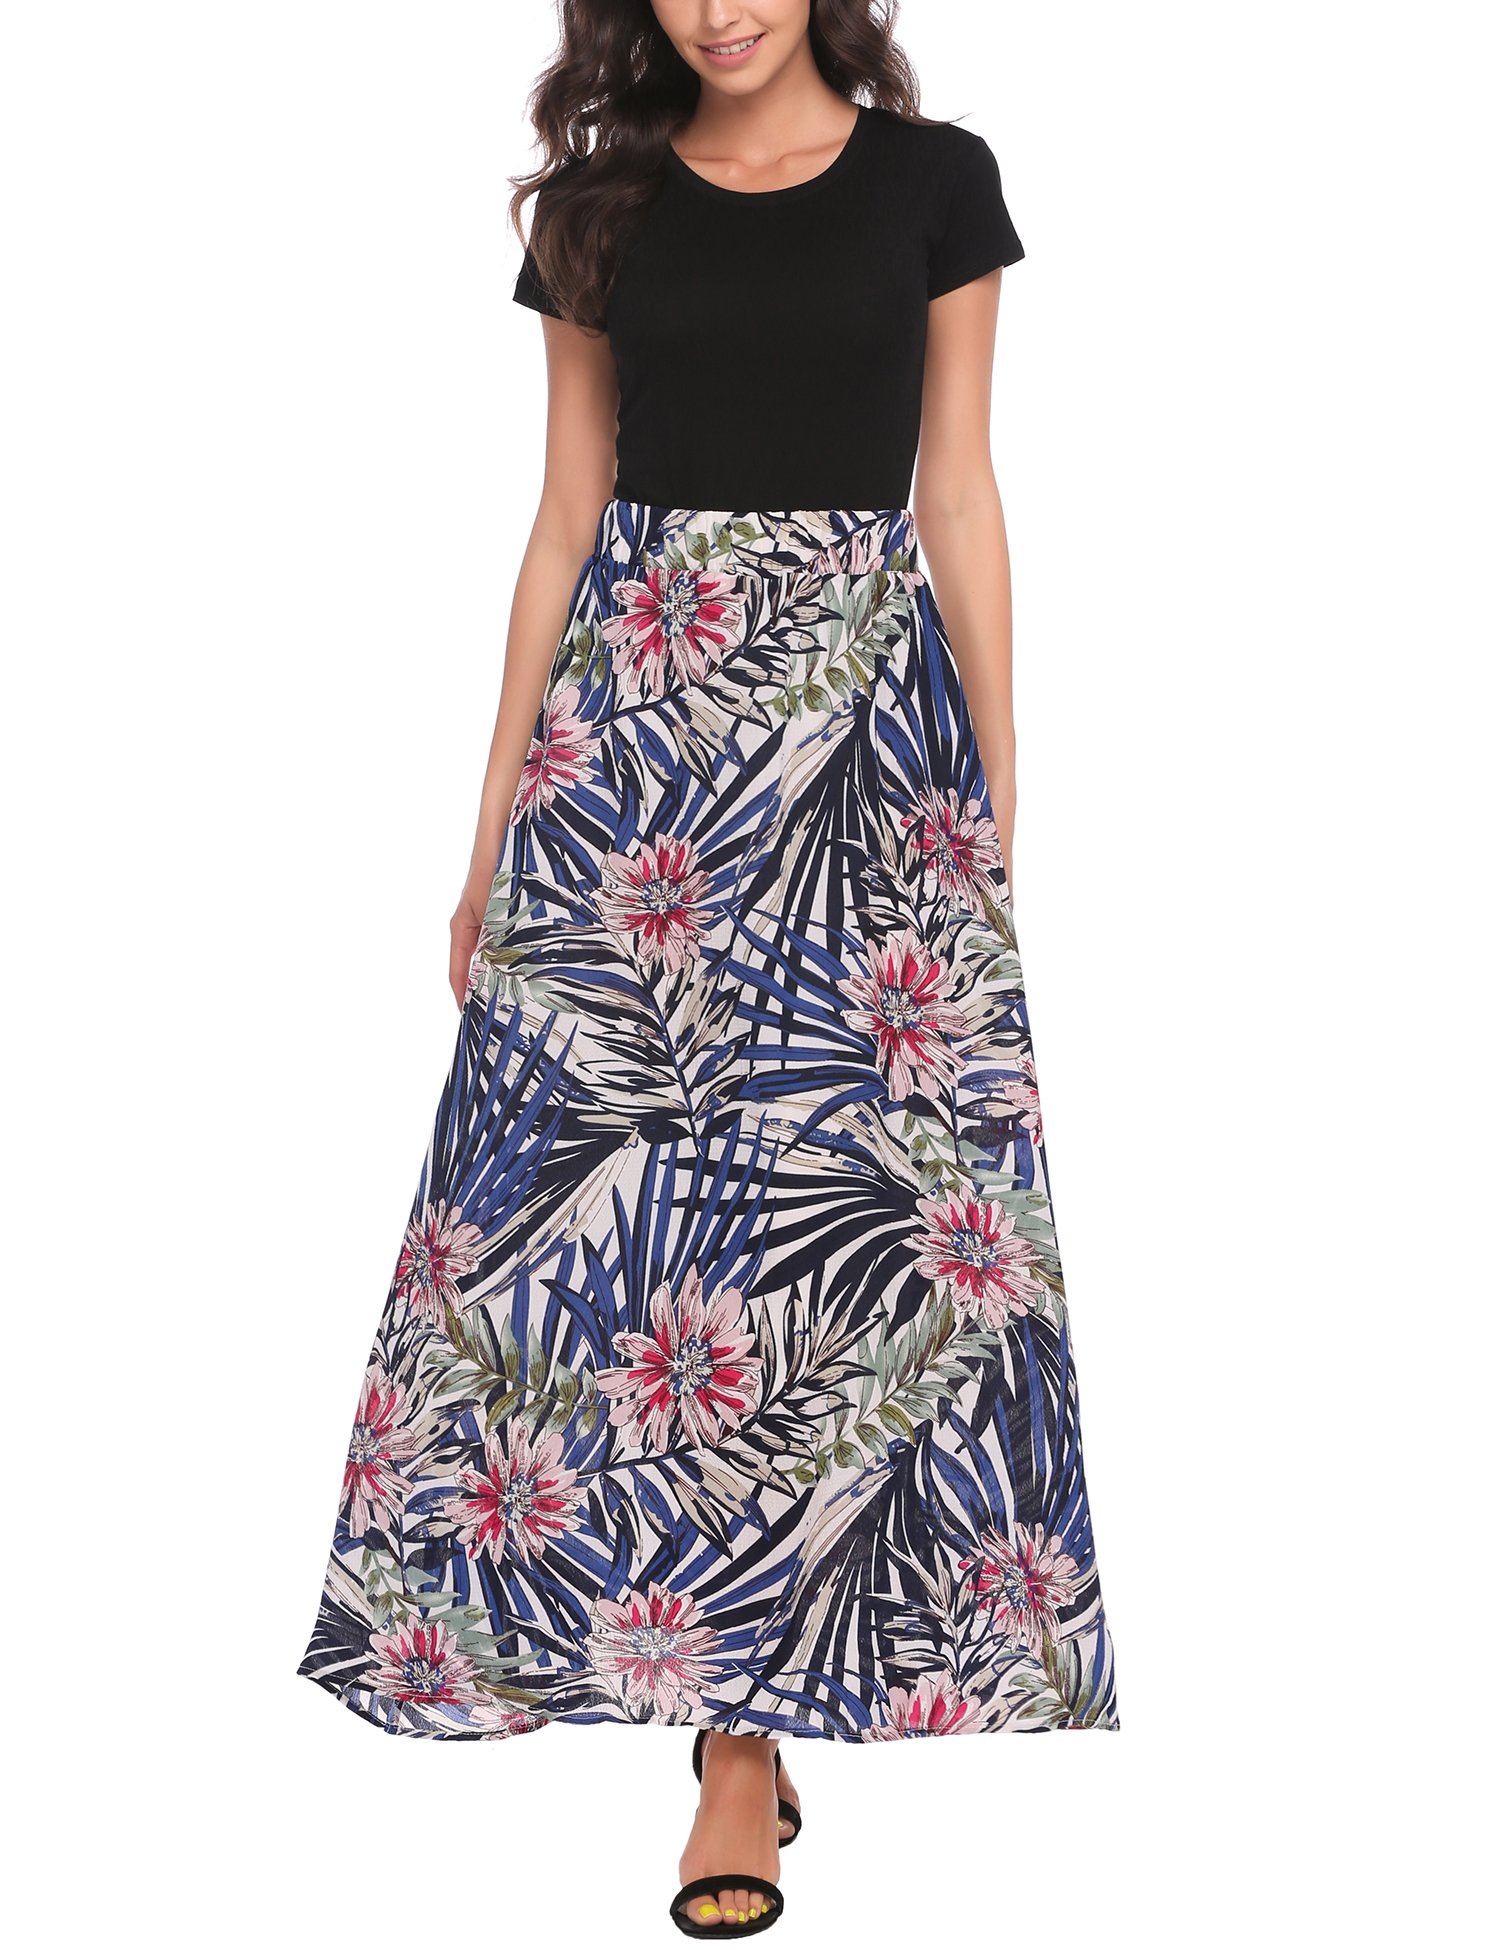 Zeagoo Women African Boho Floral Print High Waist Beach Party Bohemia Long Maxi Skirt by Zeagoo (Image #4)